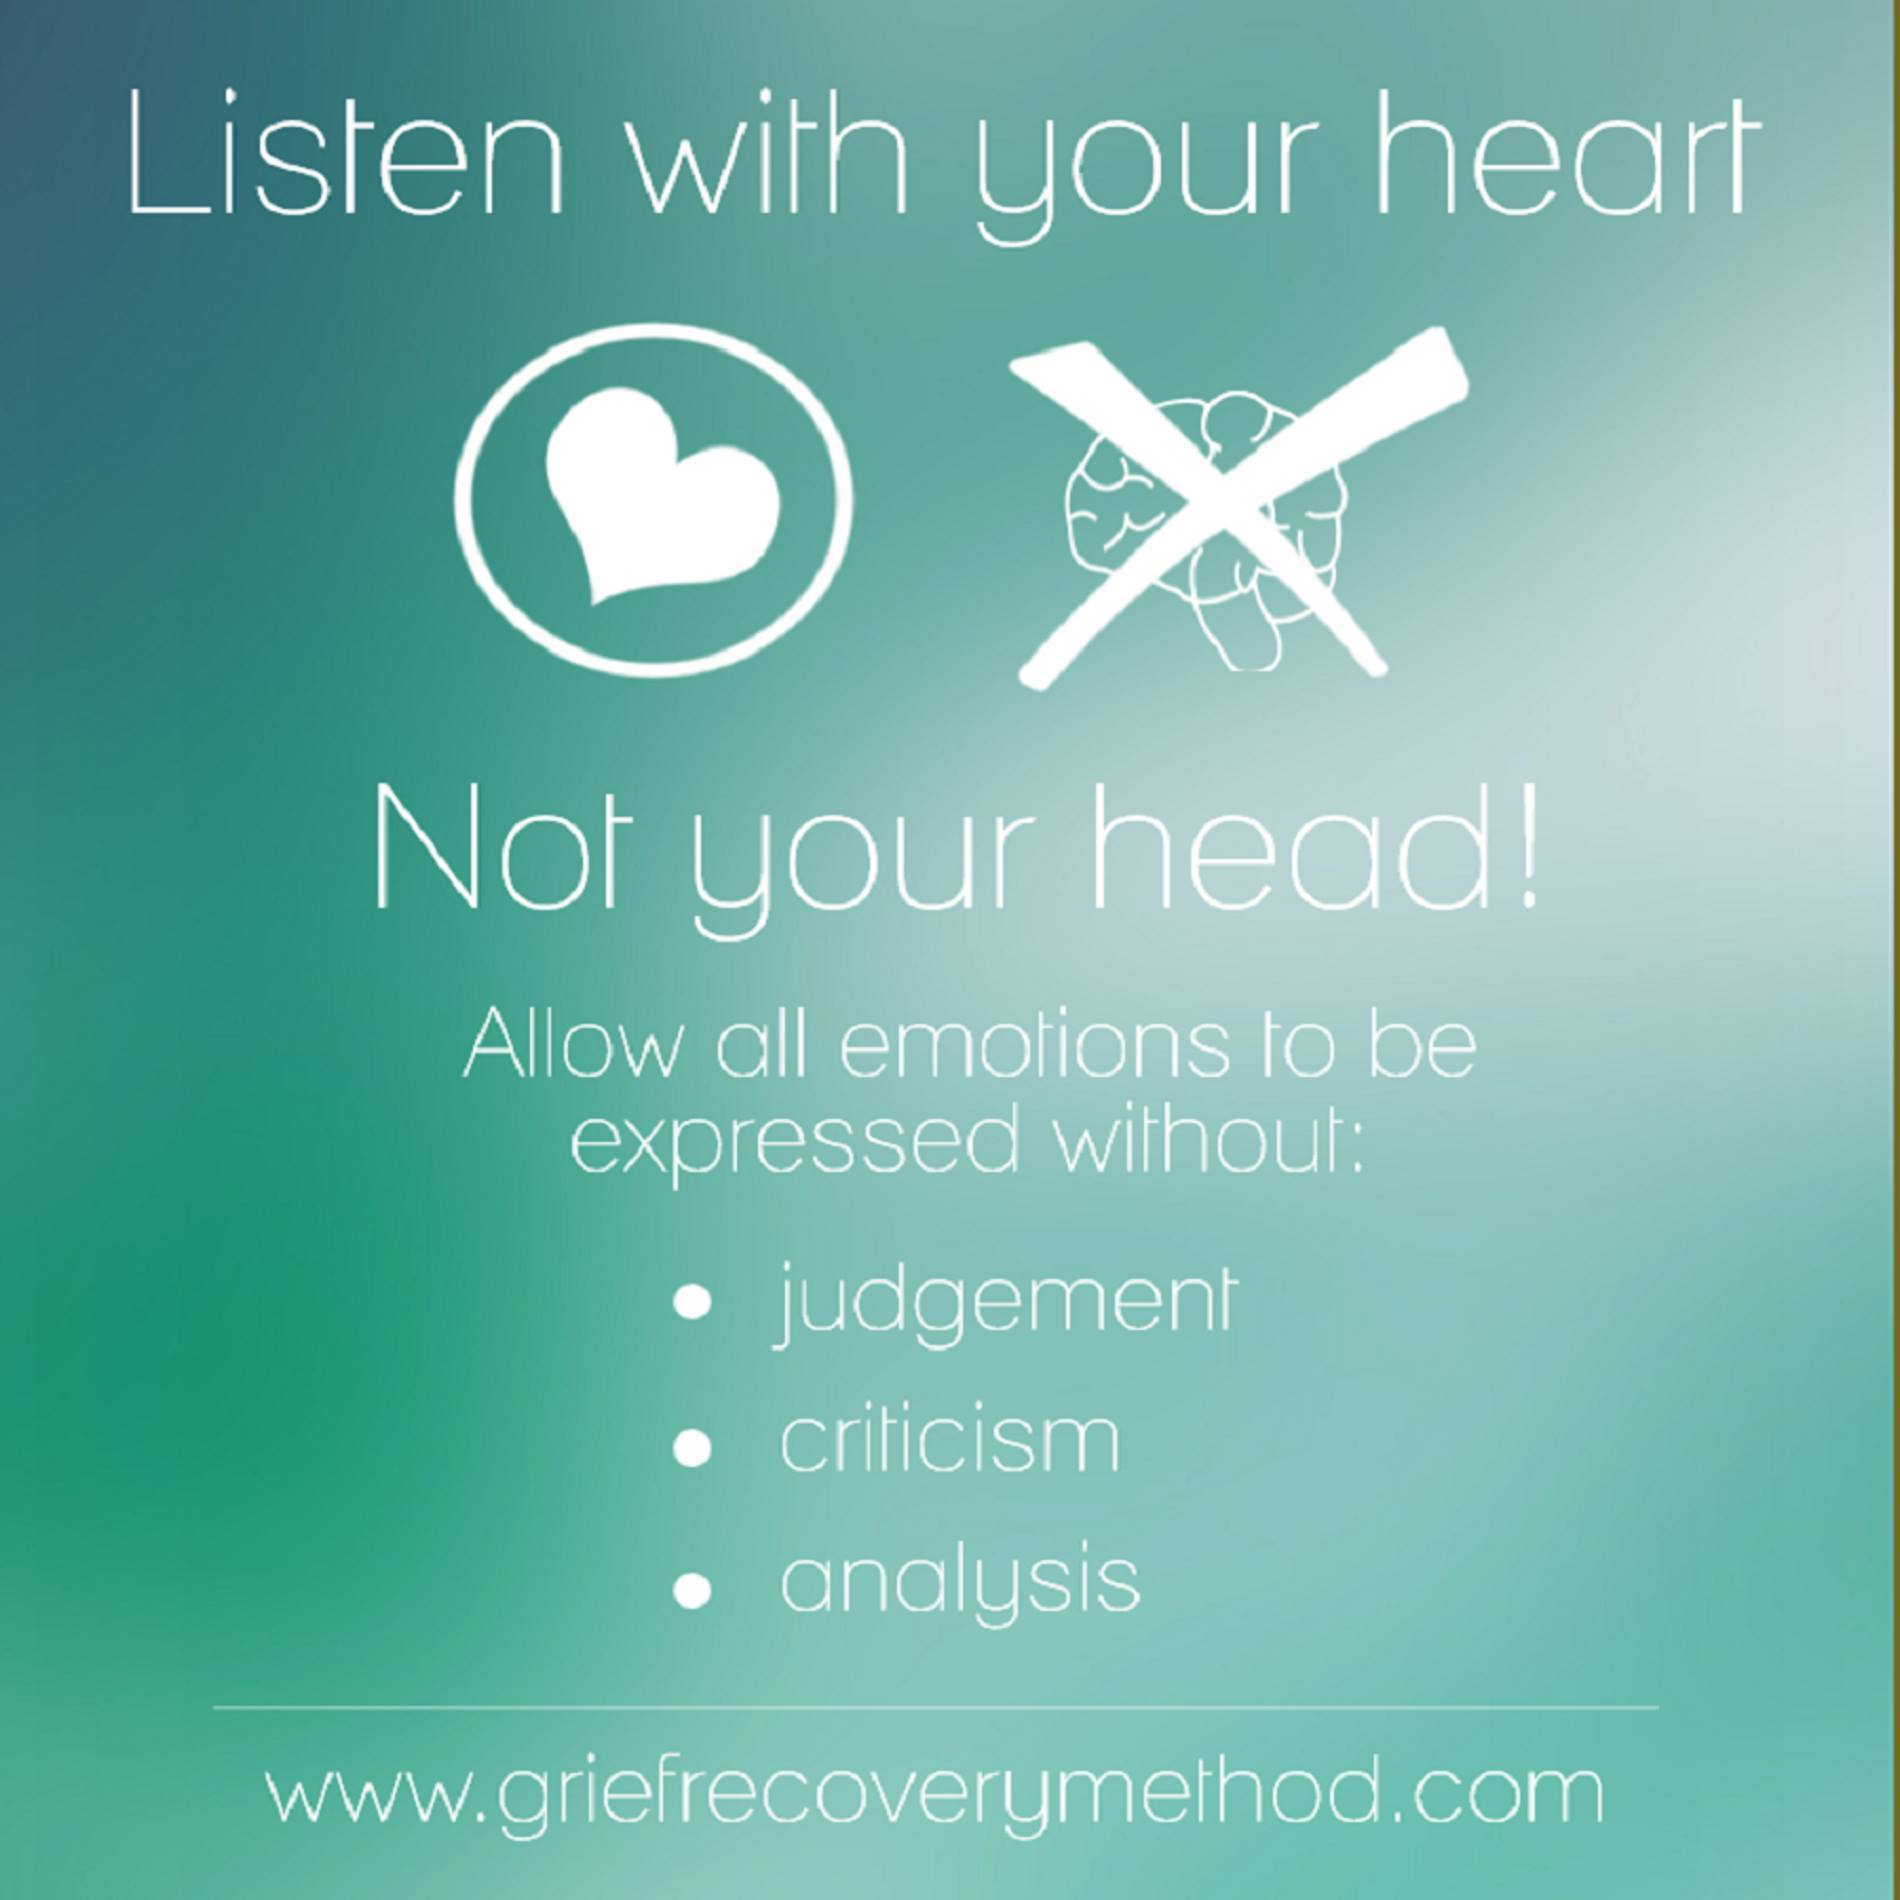 listen with your heart not head-1.jpg